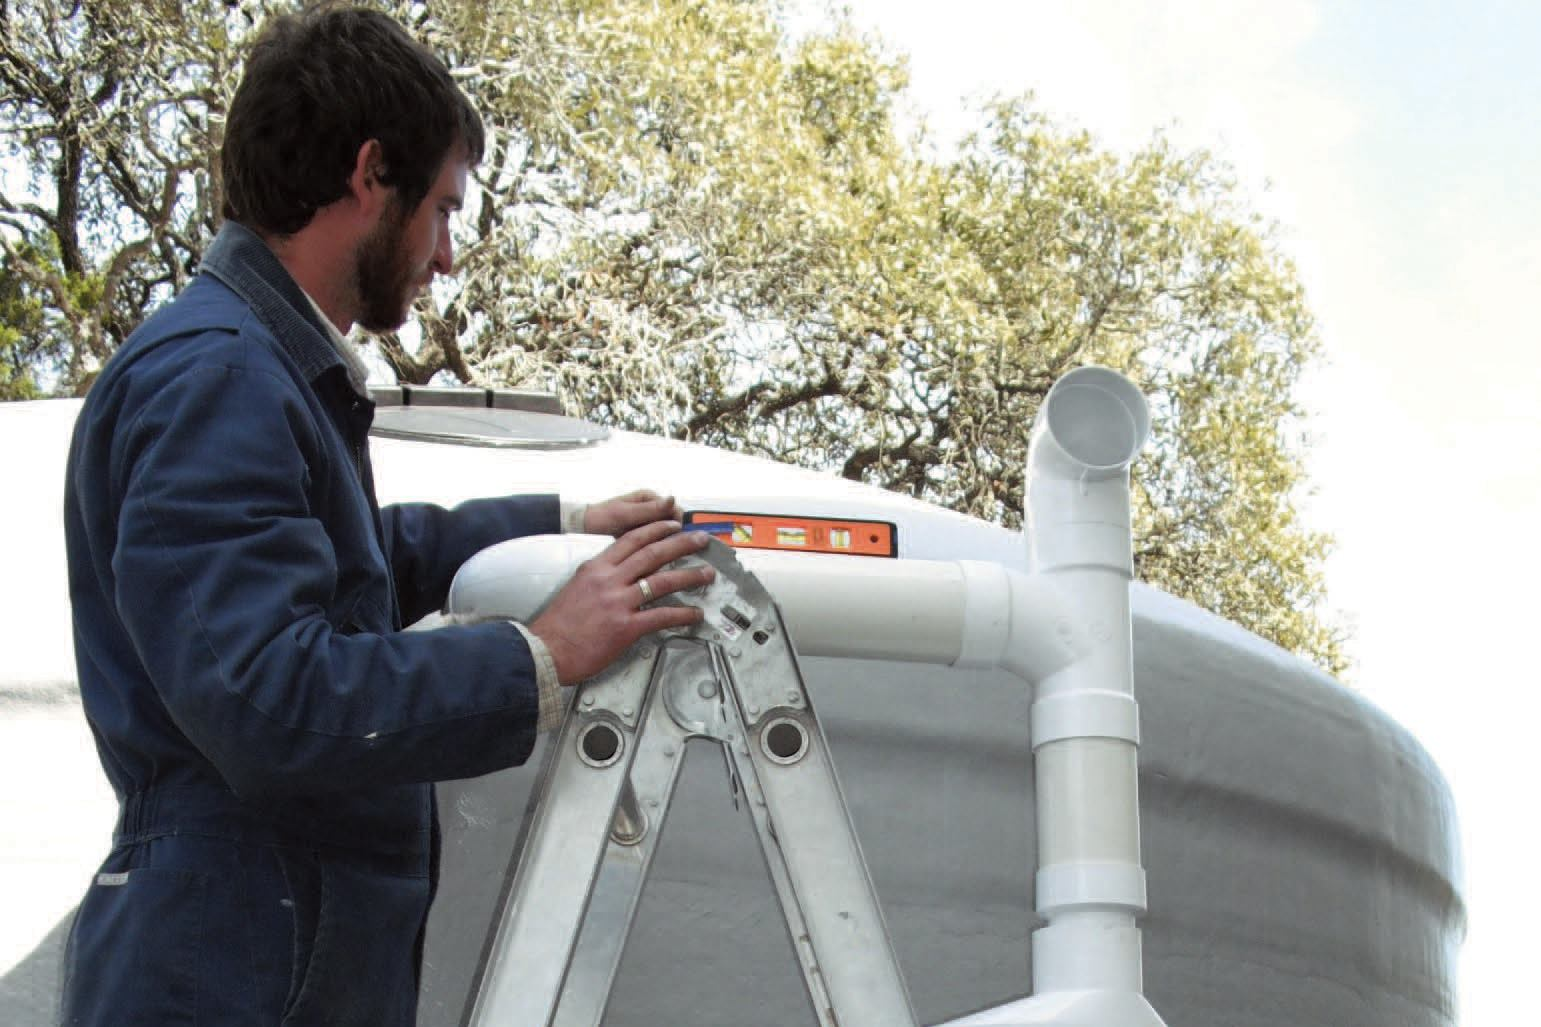 Residential Rainwater Collection Systems Jlc Online